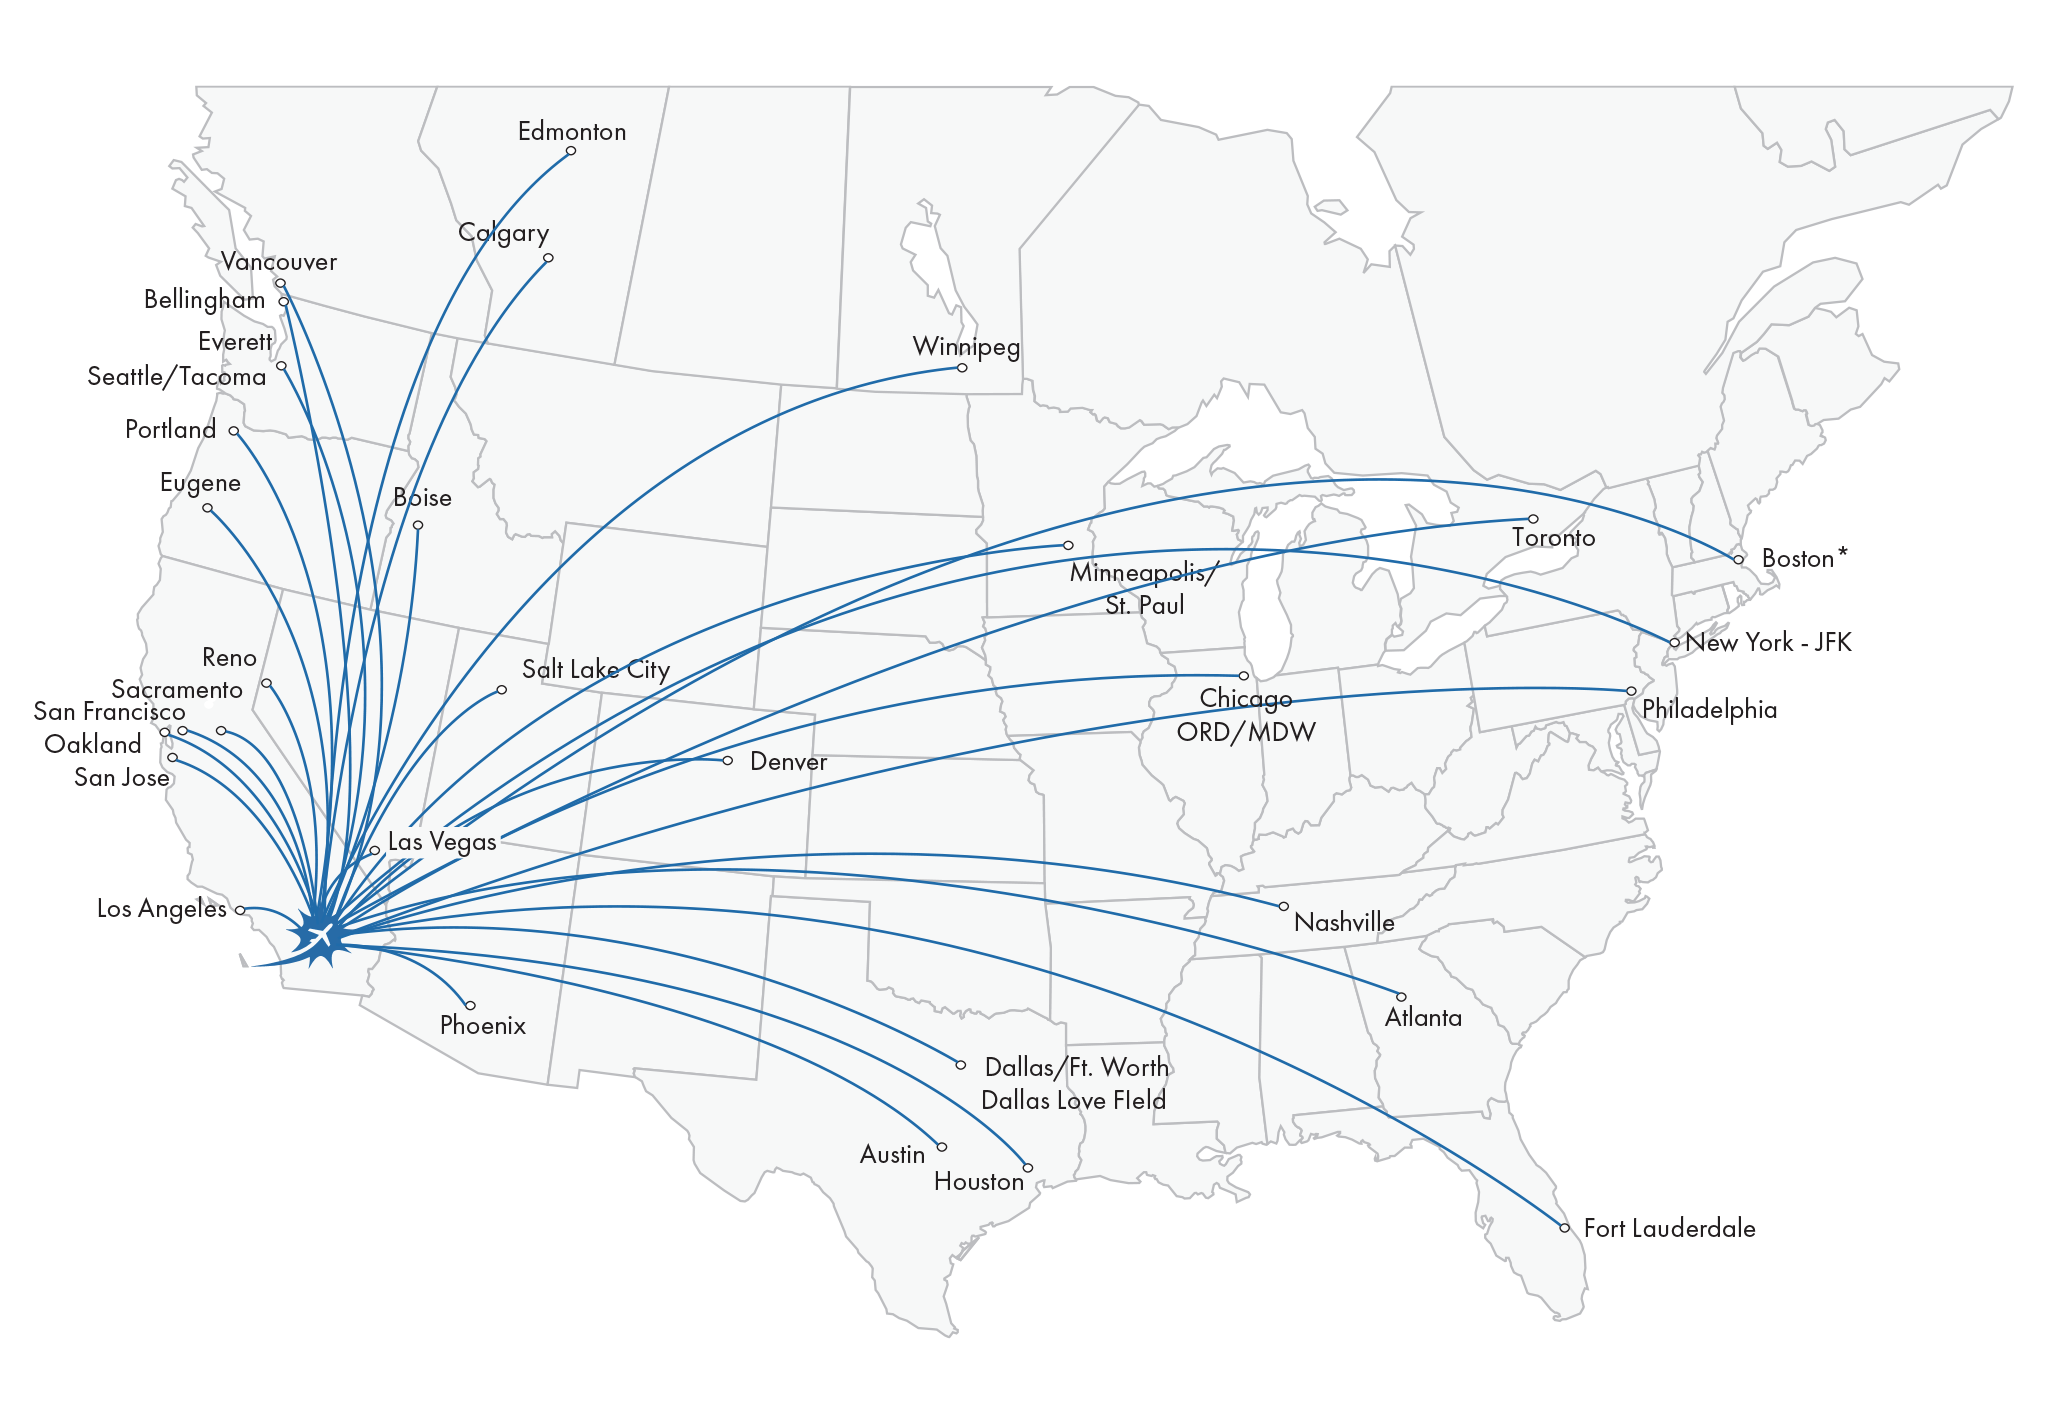 Palm Springs Airport Route Map